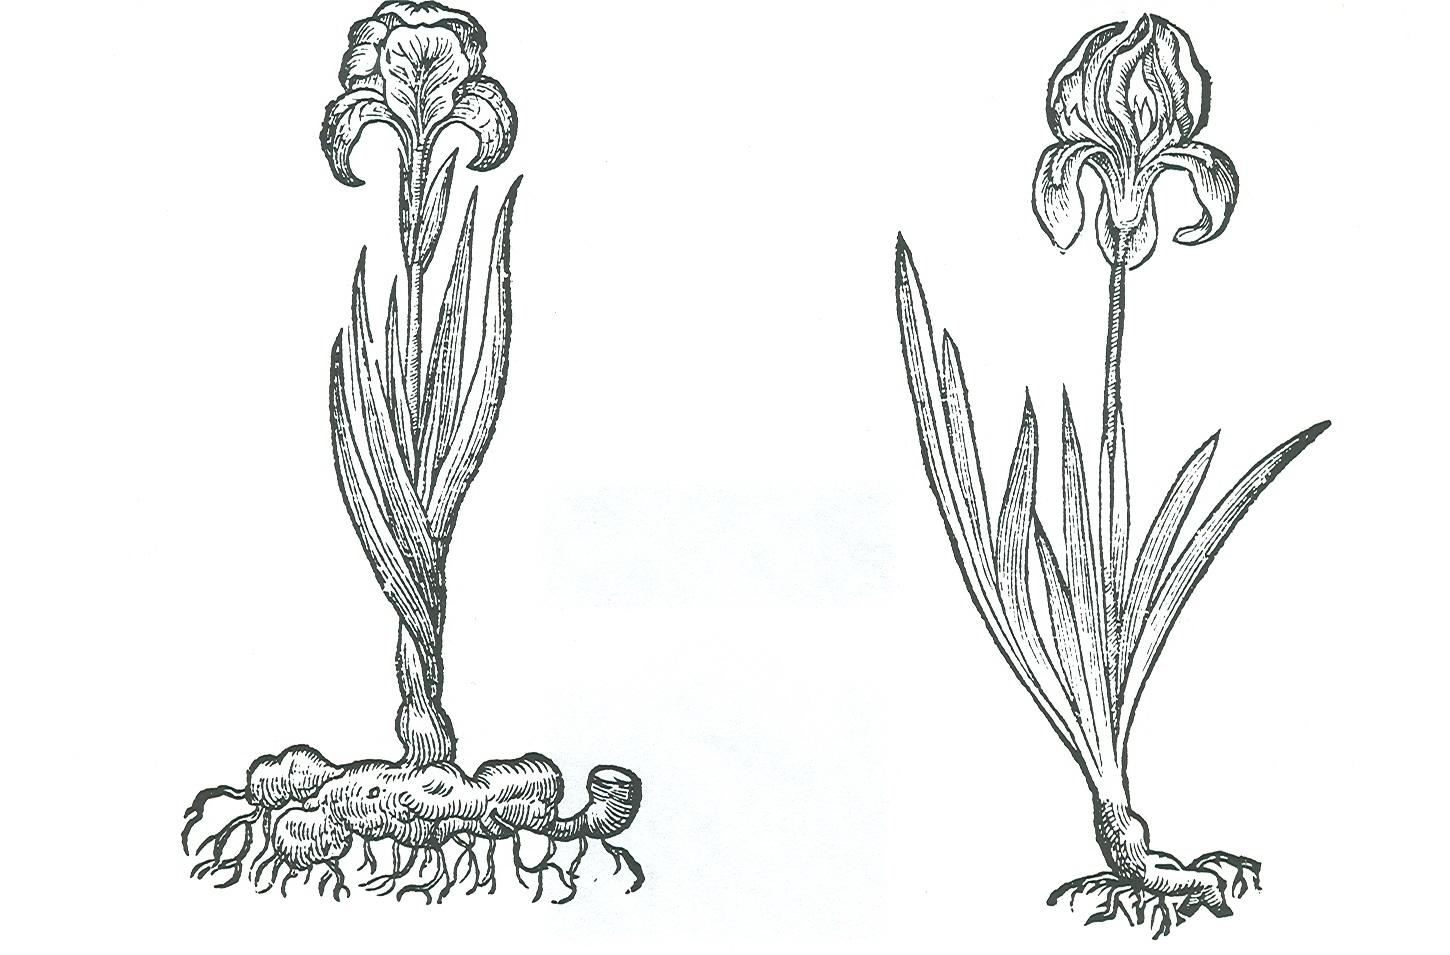 Two 'chamaeirises' from 16th century gardens, the original standard dwarfs.   From Gerard's Herbal of 1597.  Click to enlarge.